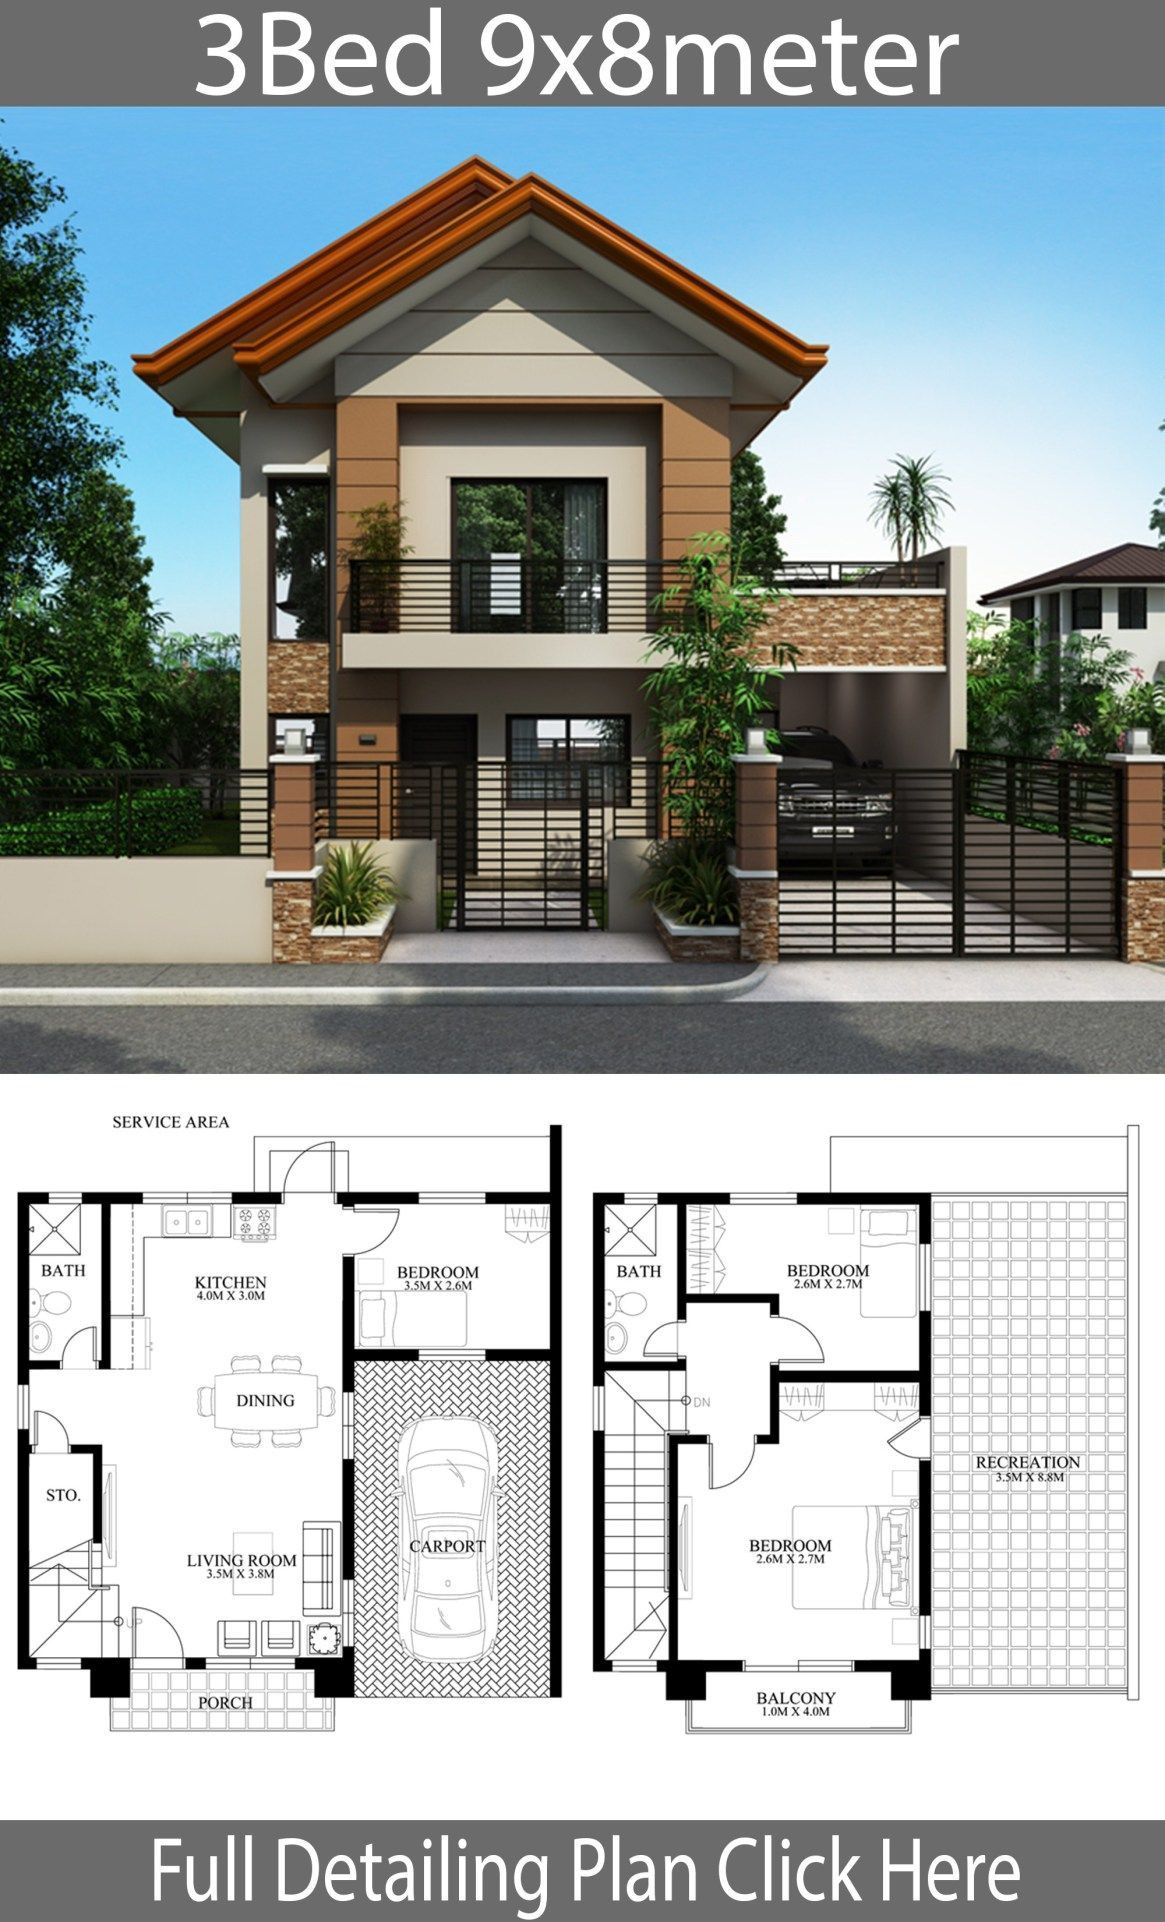 Elegant Small Modern House Design Philippines Floor Plans Home Design Plan 9x8m With 3 In 2020 Philippines House Design Modern House Floor Plans 2 Storey House Design